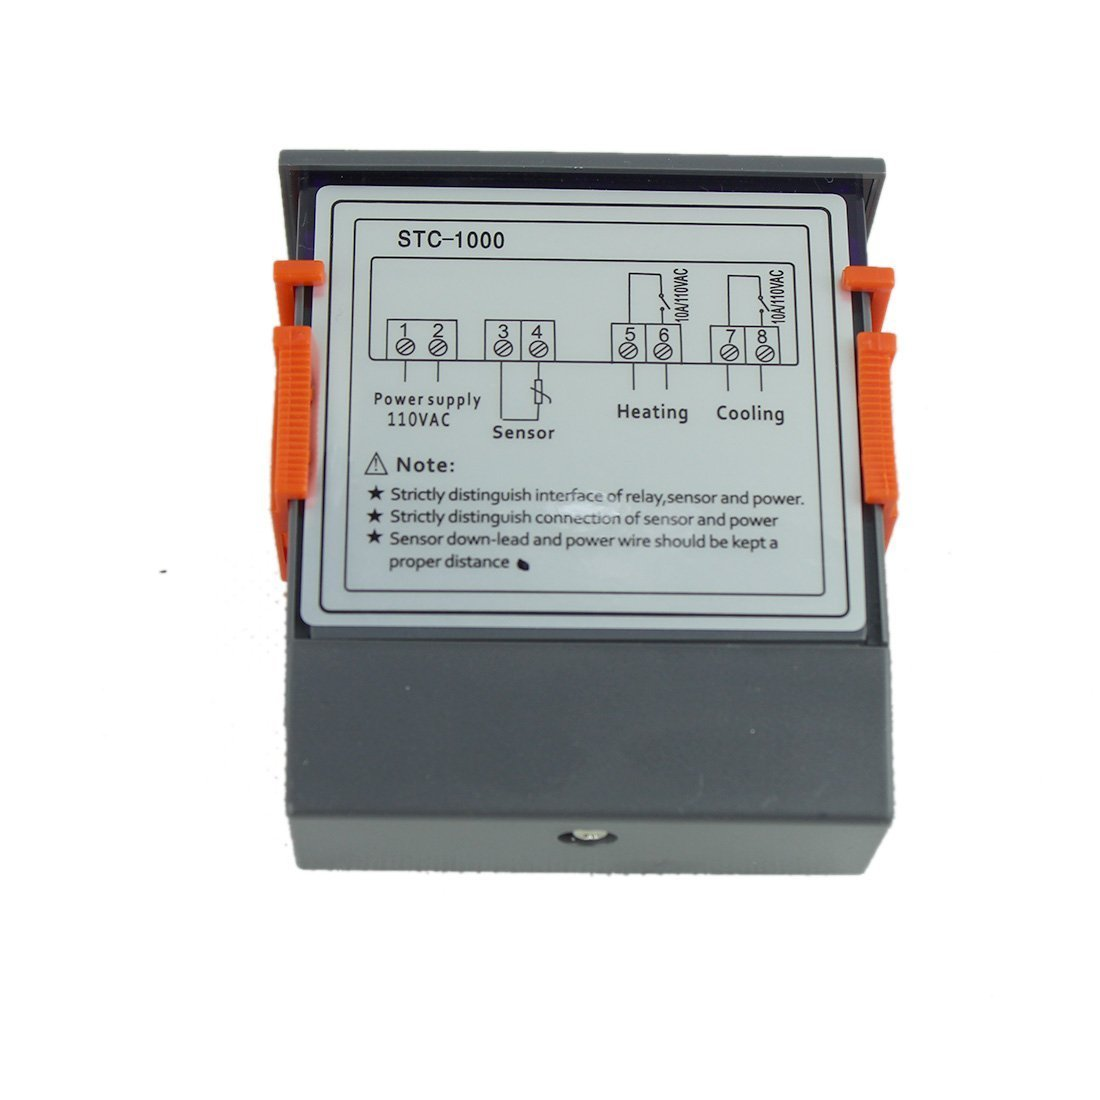 110v All Purpose Temperature Controller Stc 1000 With Sensor Amazon Wiring Diagram Industrial Scientific